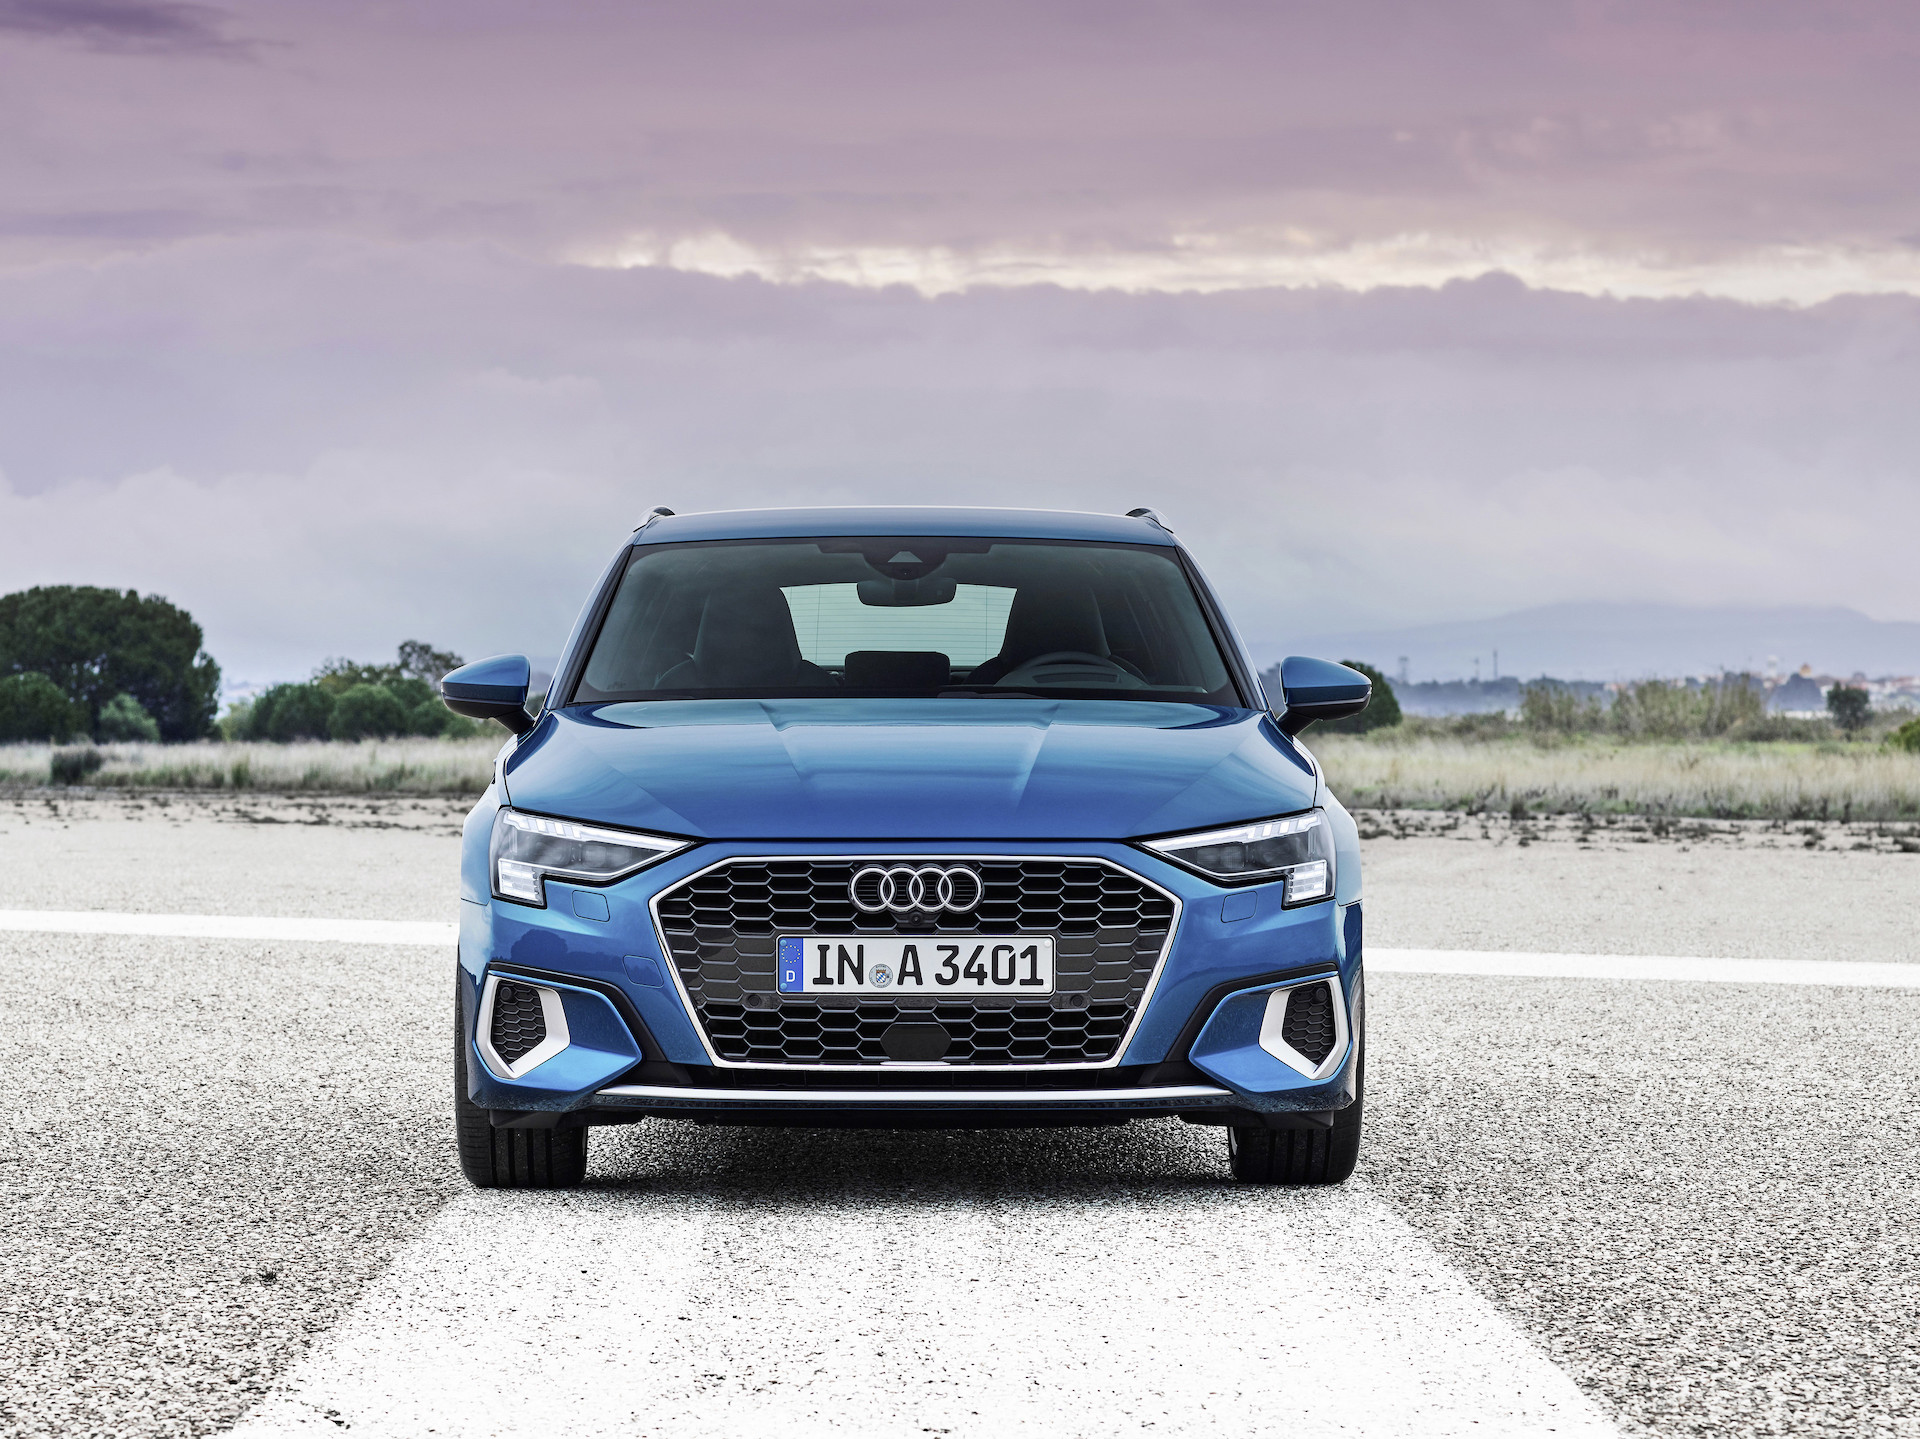 Fully Digital: This is the new Audi A3 Sportback 7